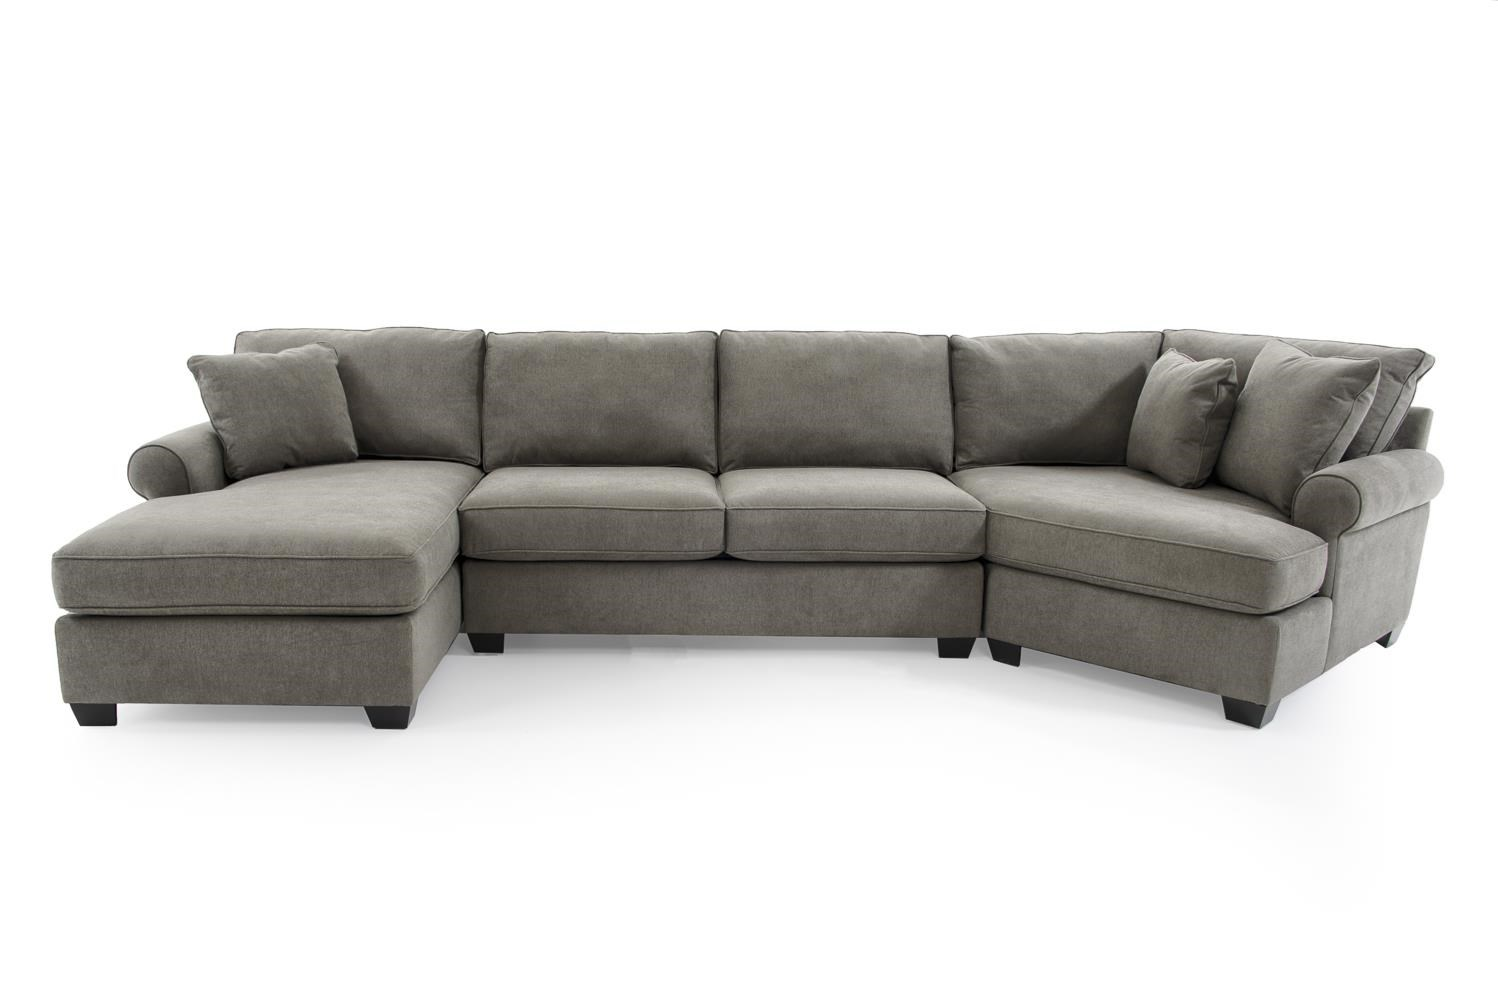 max home jessica casual three piece sectional sofa with